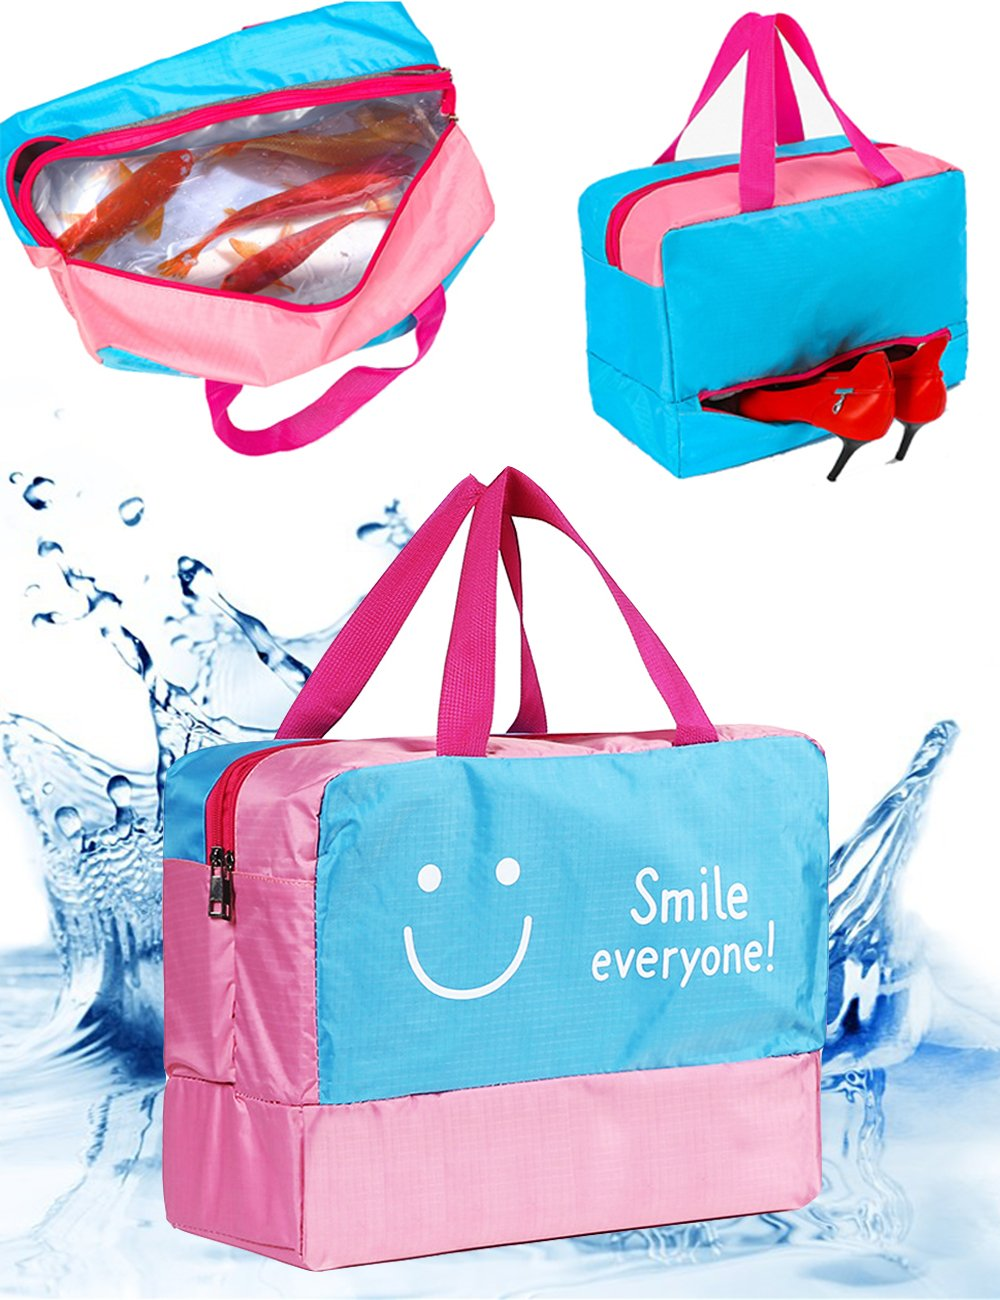 2a4b8634f0c3 Sport Duffel Swim Bag with Shoes Compartment Gym Bag Dry and Wet Separated  Bag Tote Organizer